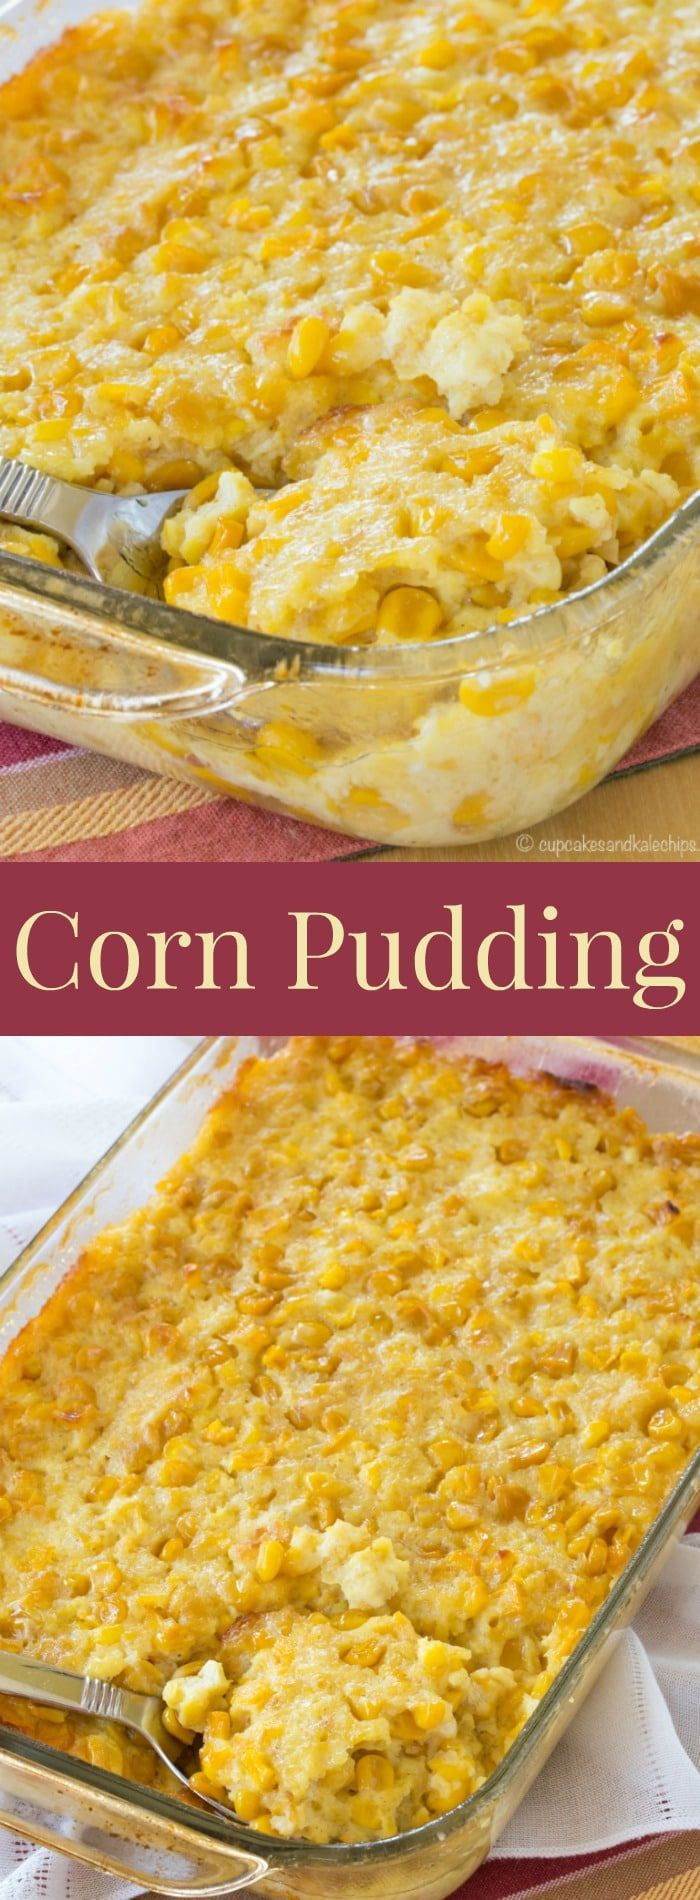 Corn Pudding - an easy family favorite side dish recipe for Thanksgiving and Christmas. You have to add this to your holiday menu!